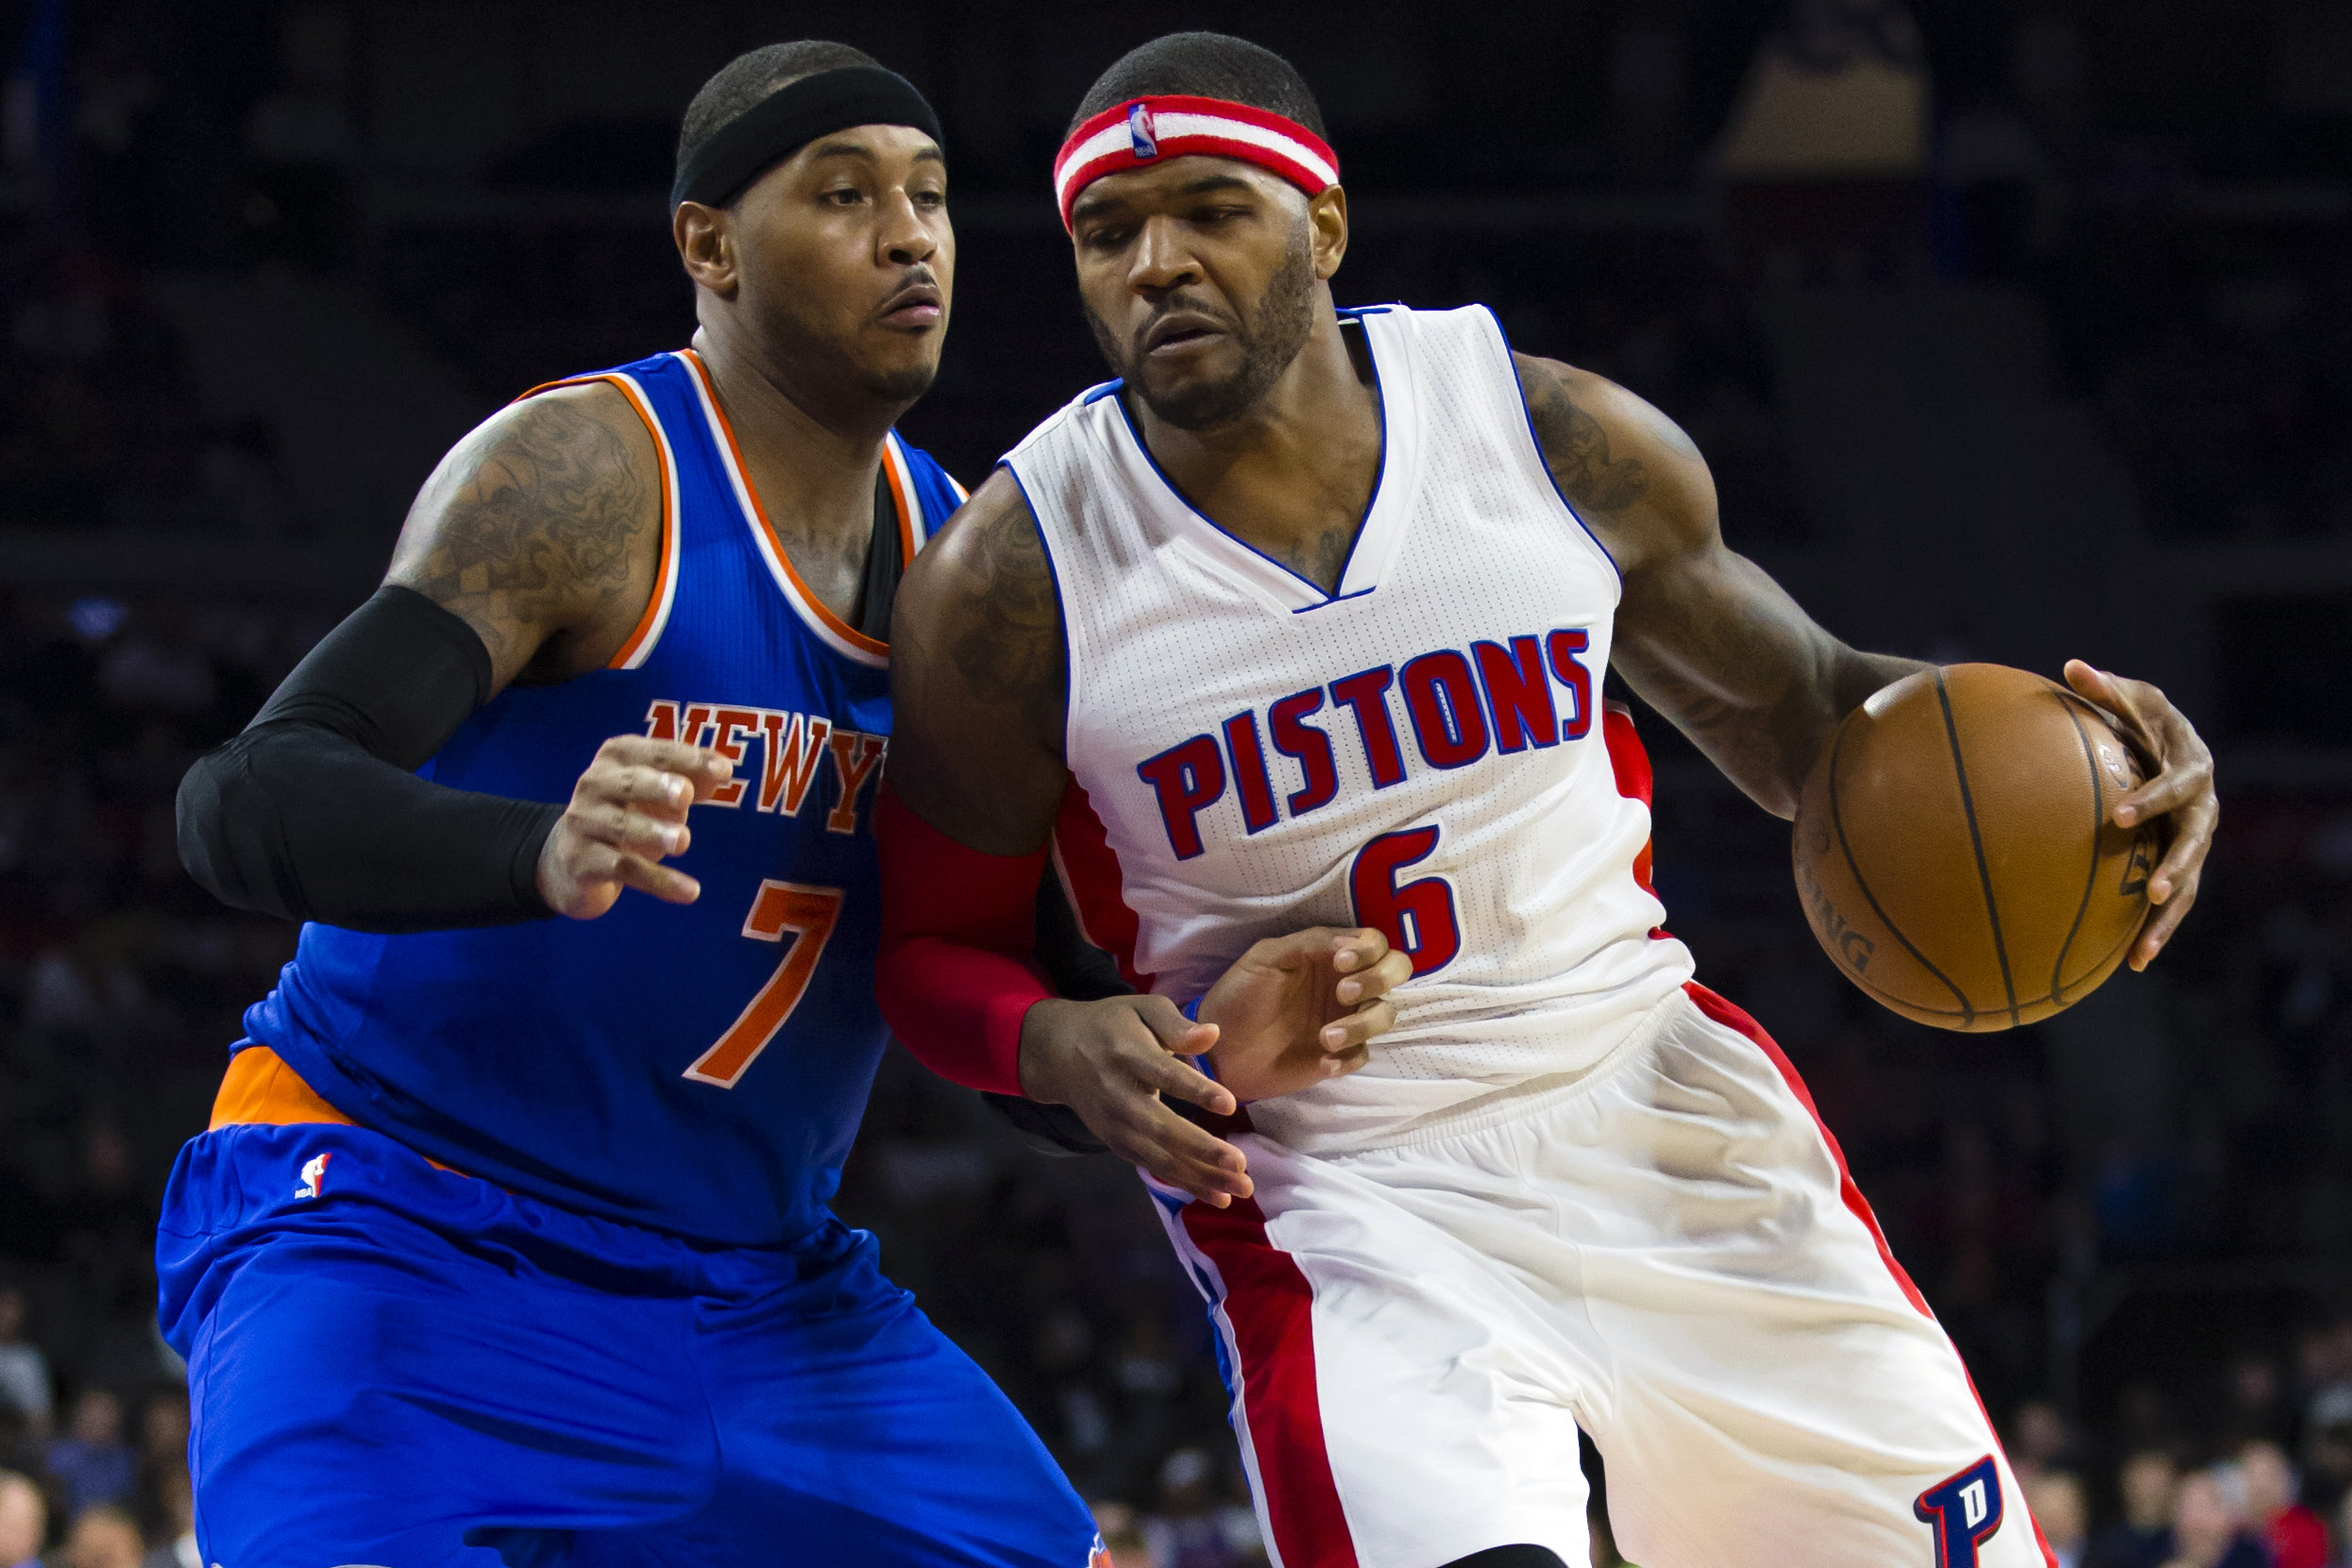 8186494-nba-new-york-knicks-at-detroit-pistons